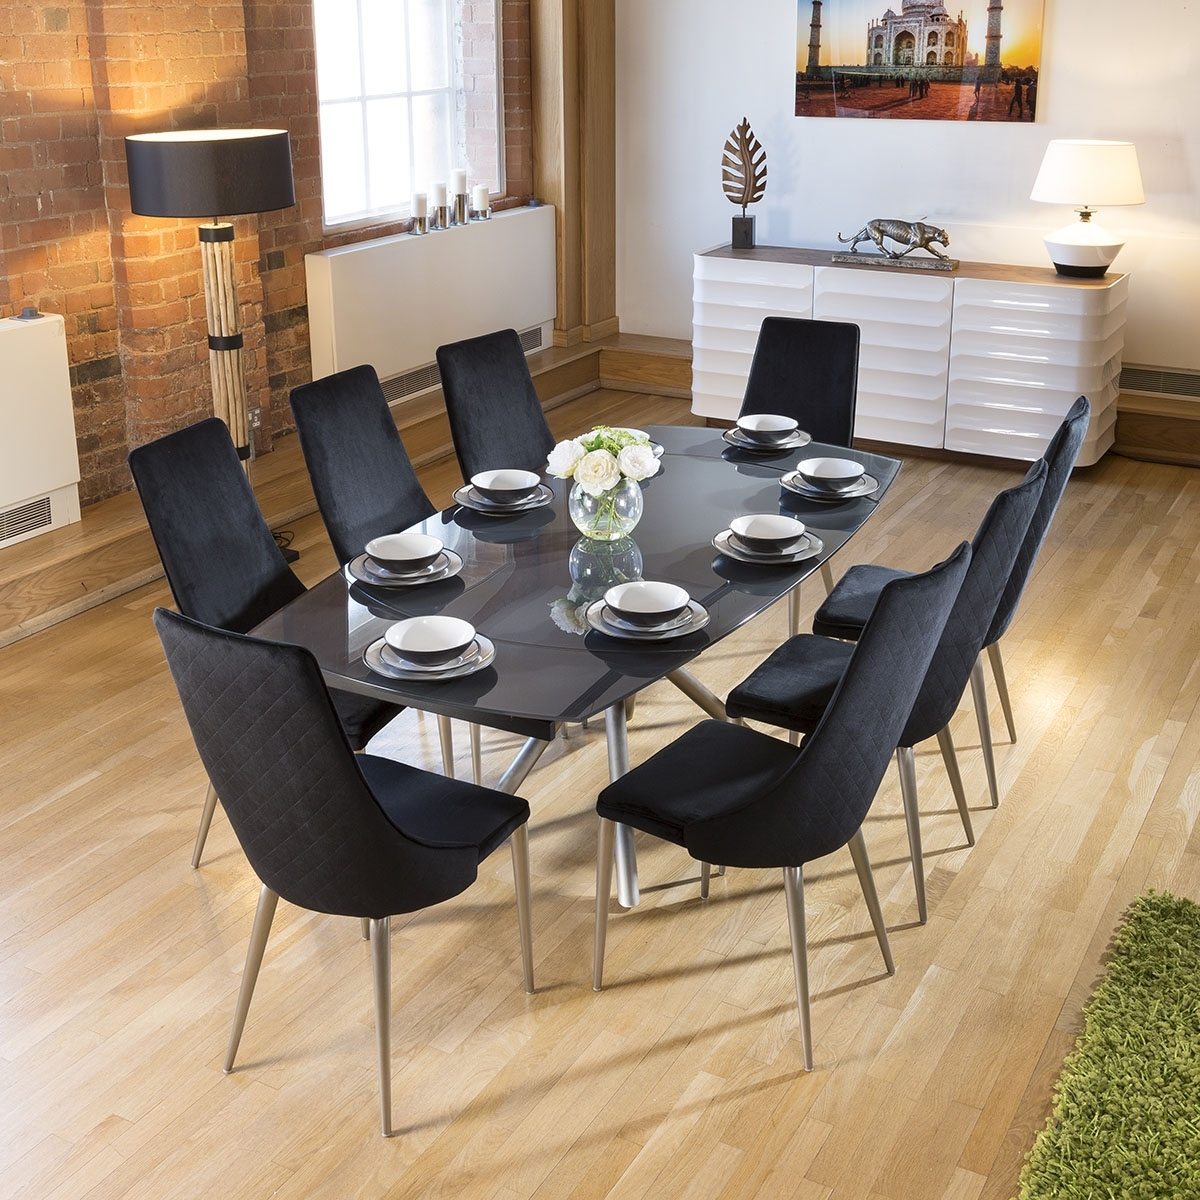 Widely Used Modern Grey Glass Extending Dining Table Set + 8 Black Velvet Chairs For Extending Dining Table Sets (View 23 of 25)